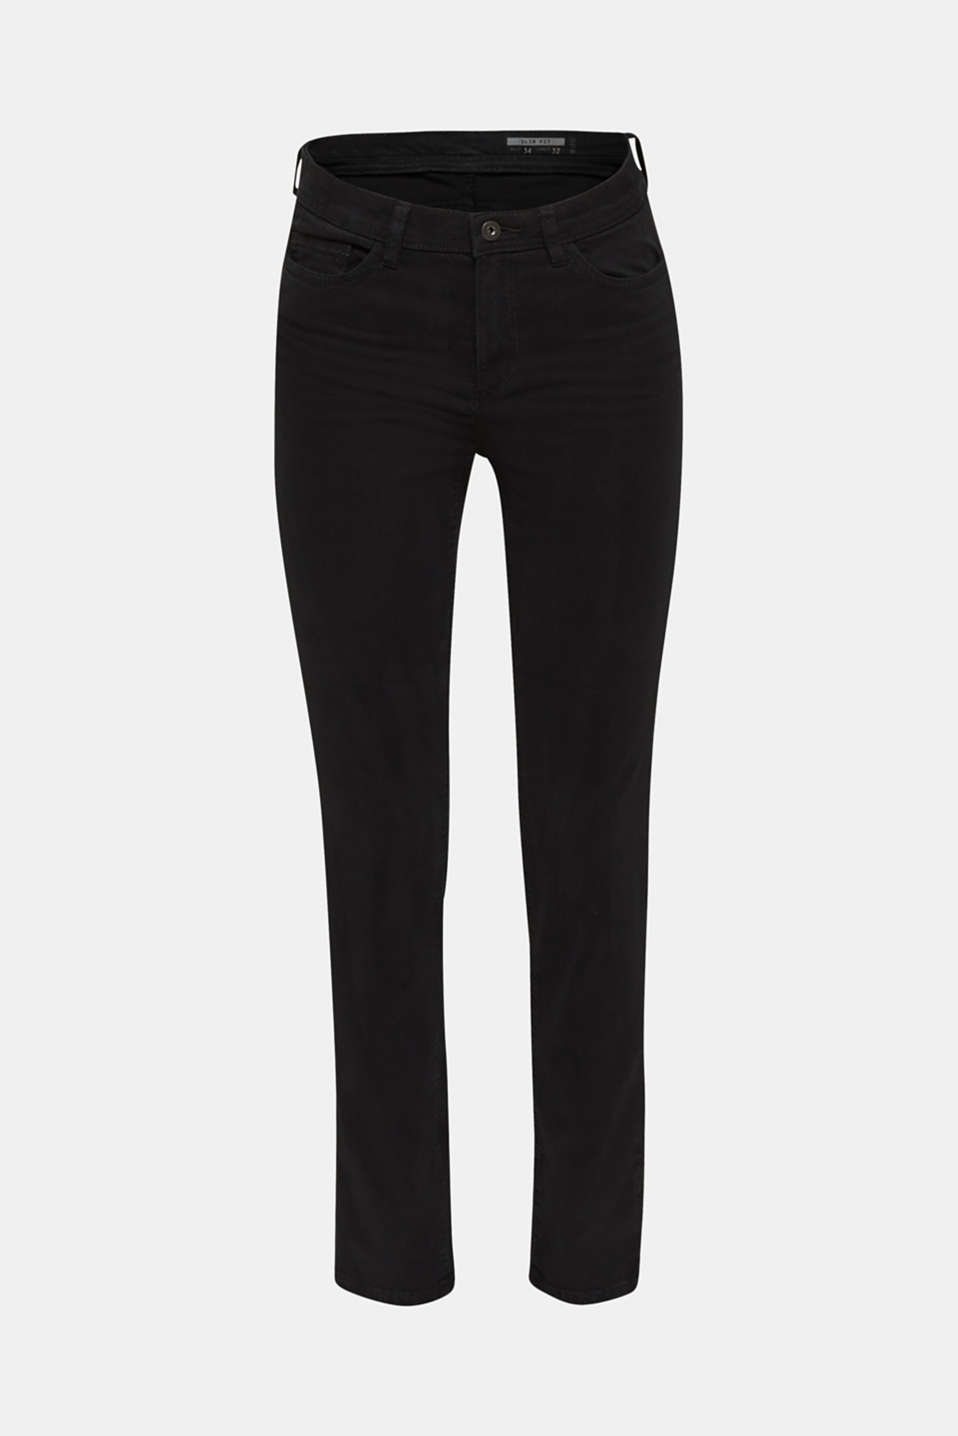 Washed-effect stretch trousers, BLACK, detail image number 7